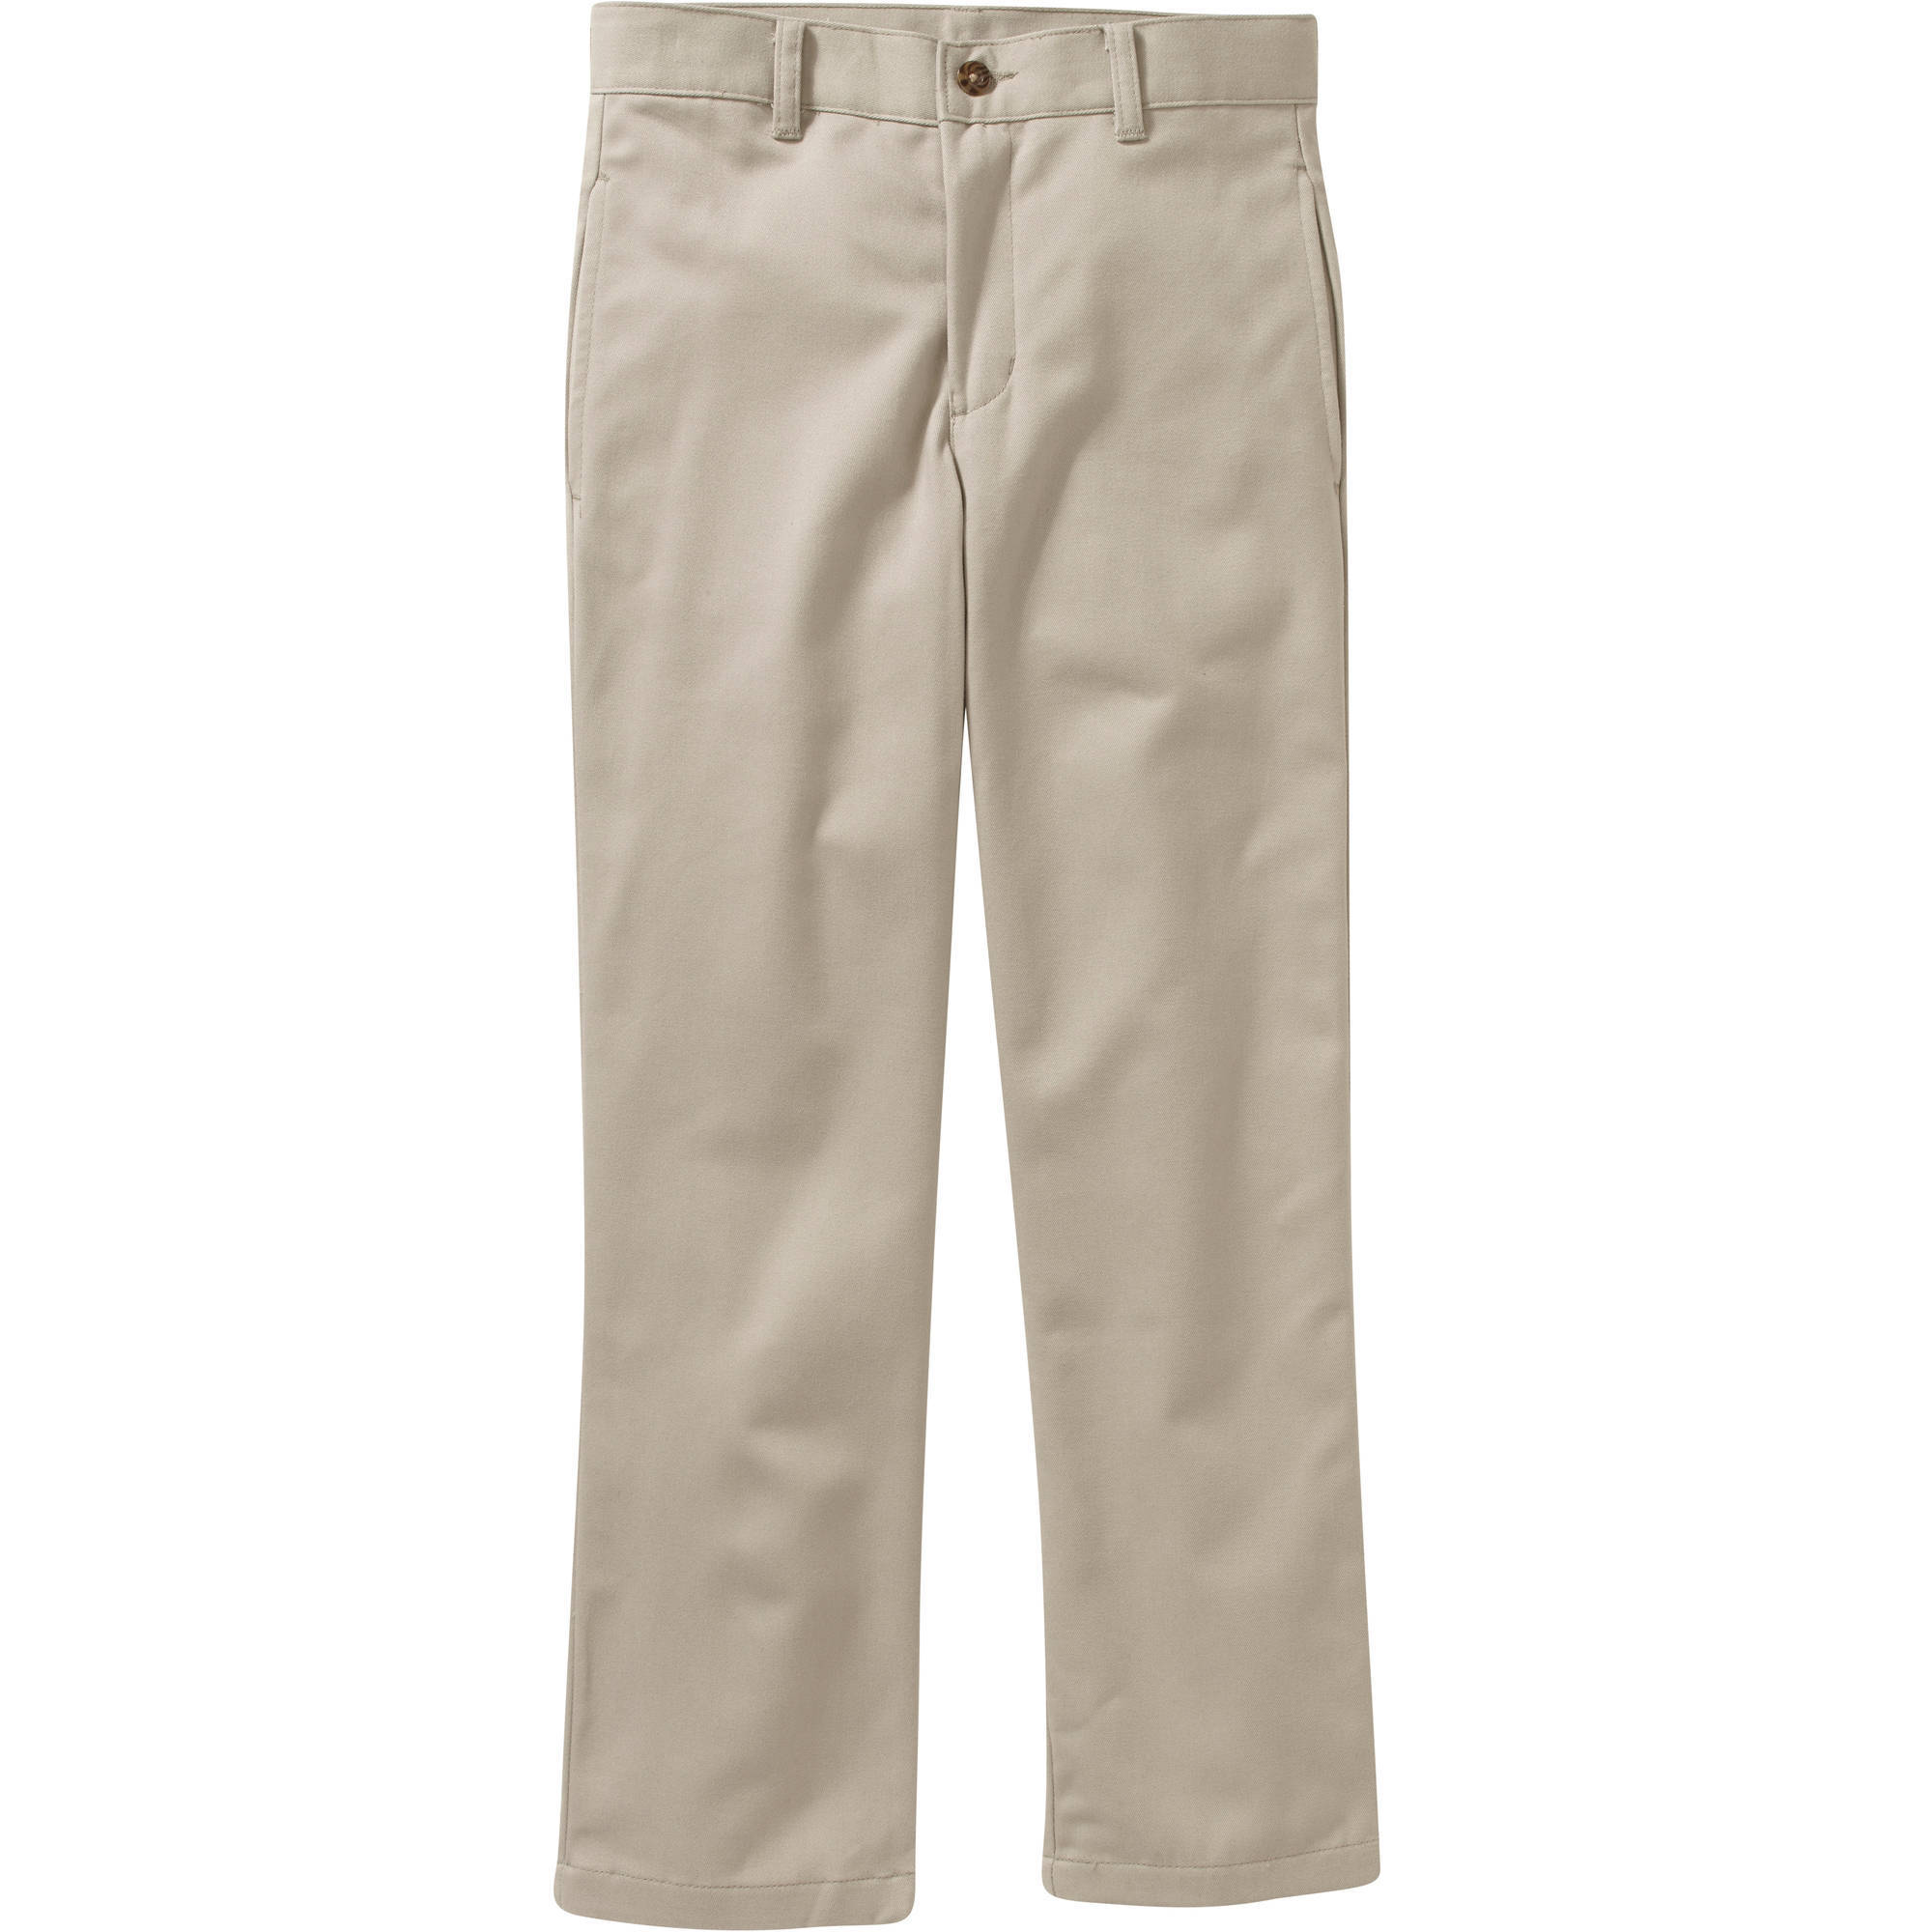 George Boys Flat Front Twill Pant With Scotchguard - Walmart.com